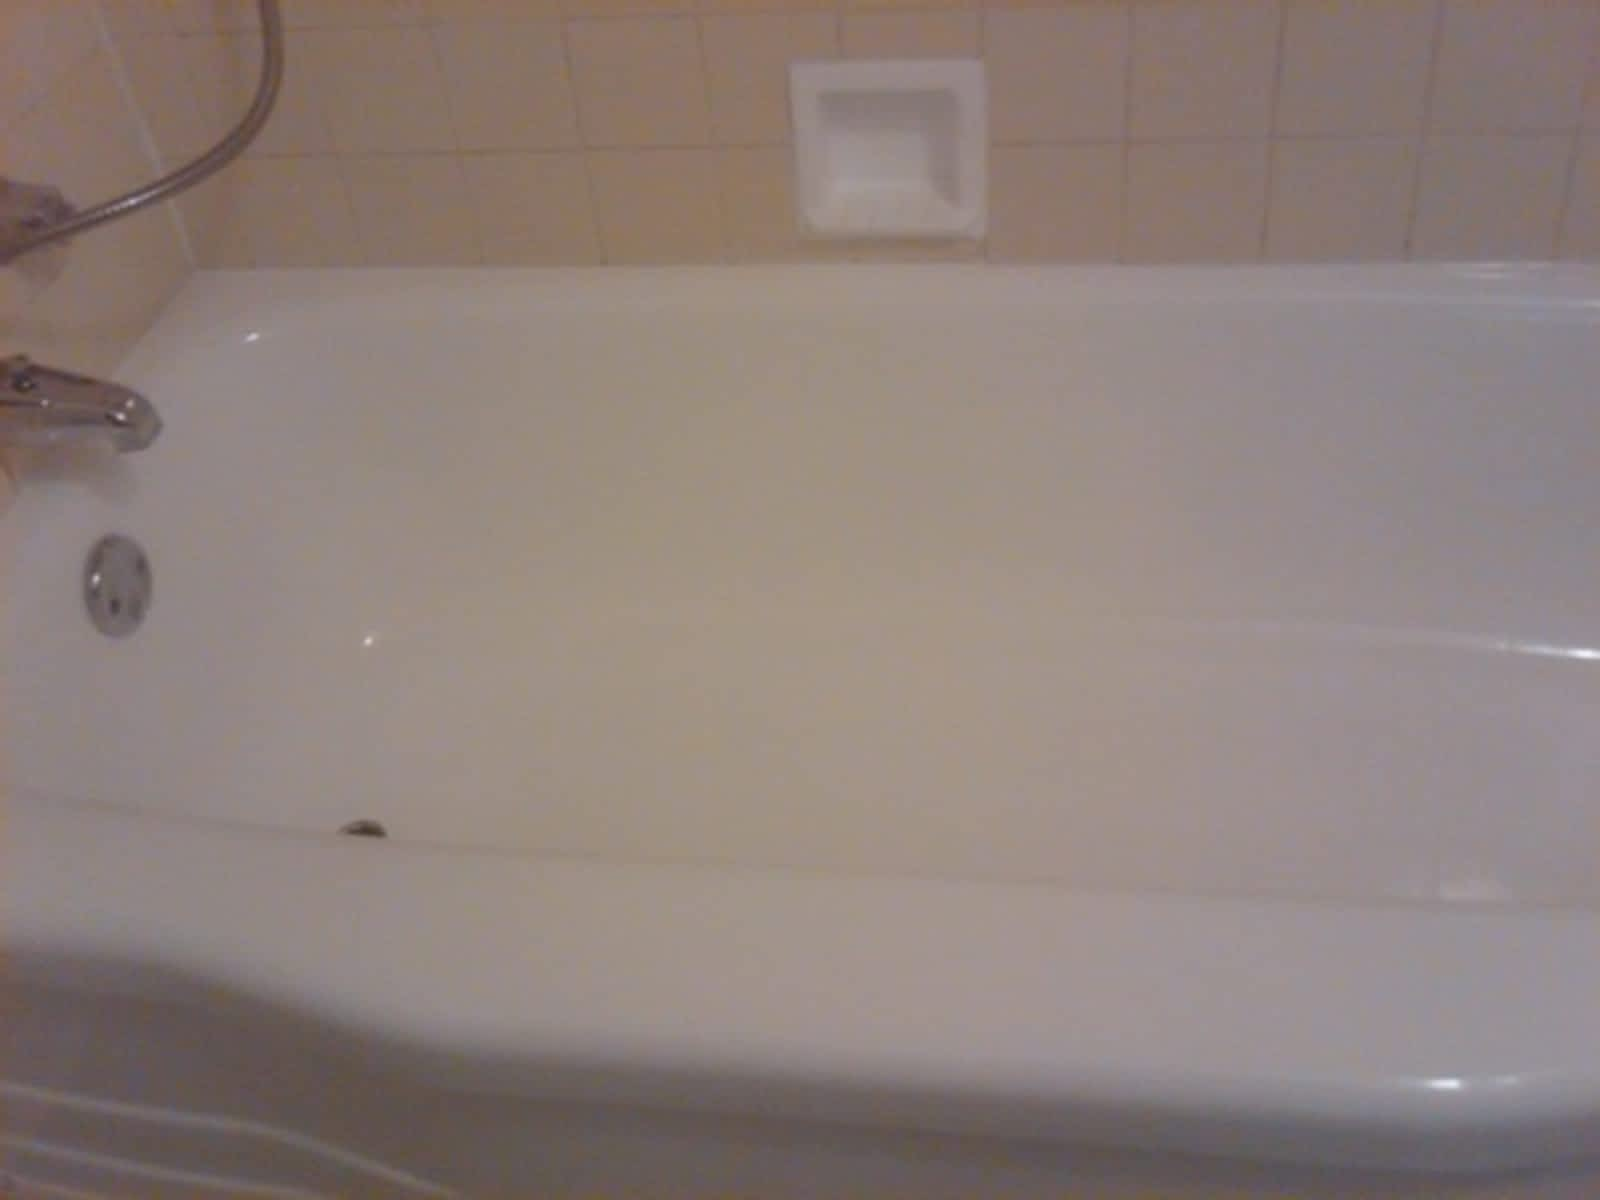 services refinishing in cut pallidan example south bend tub